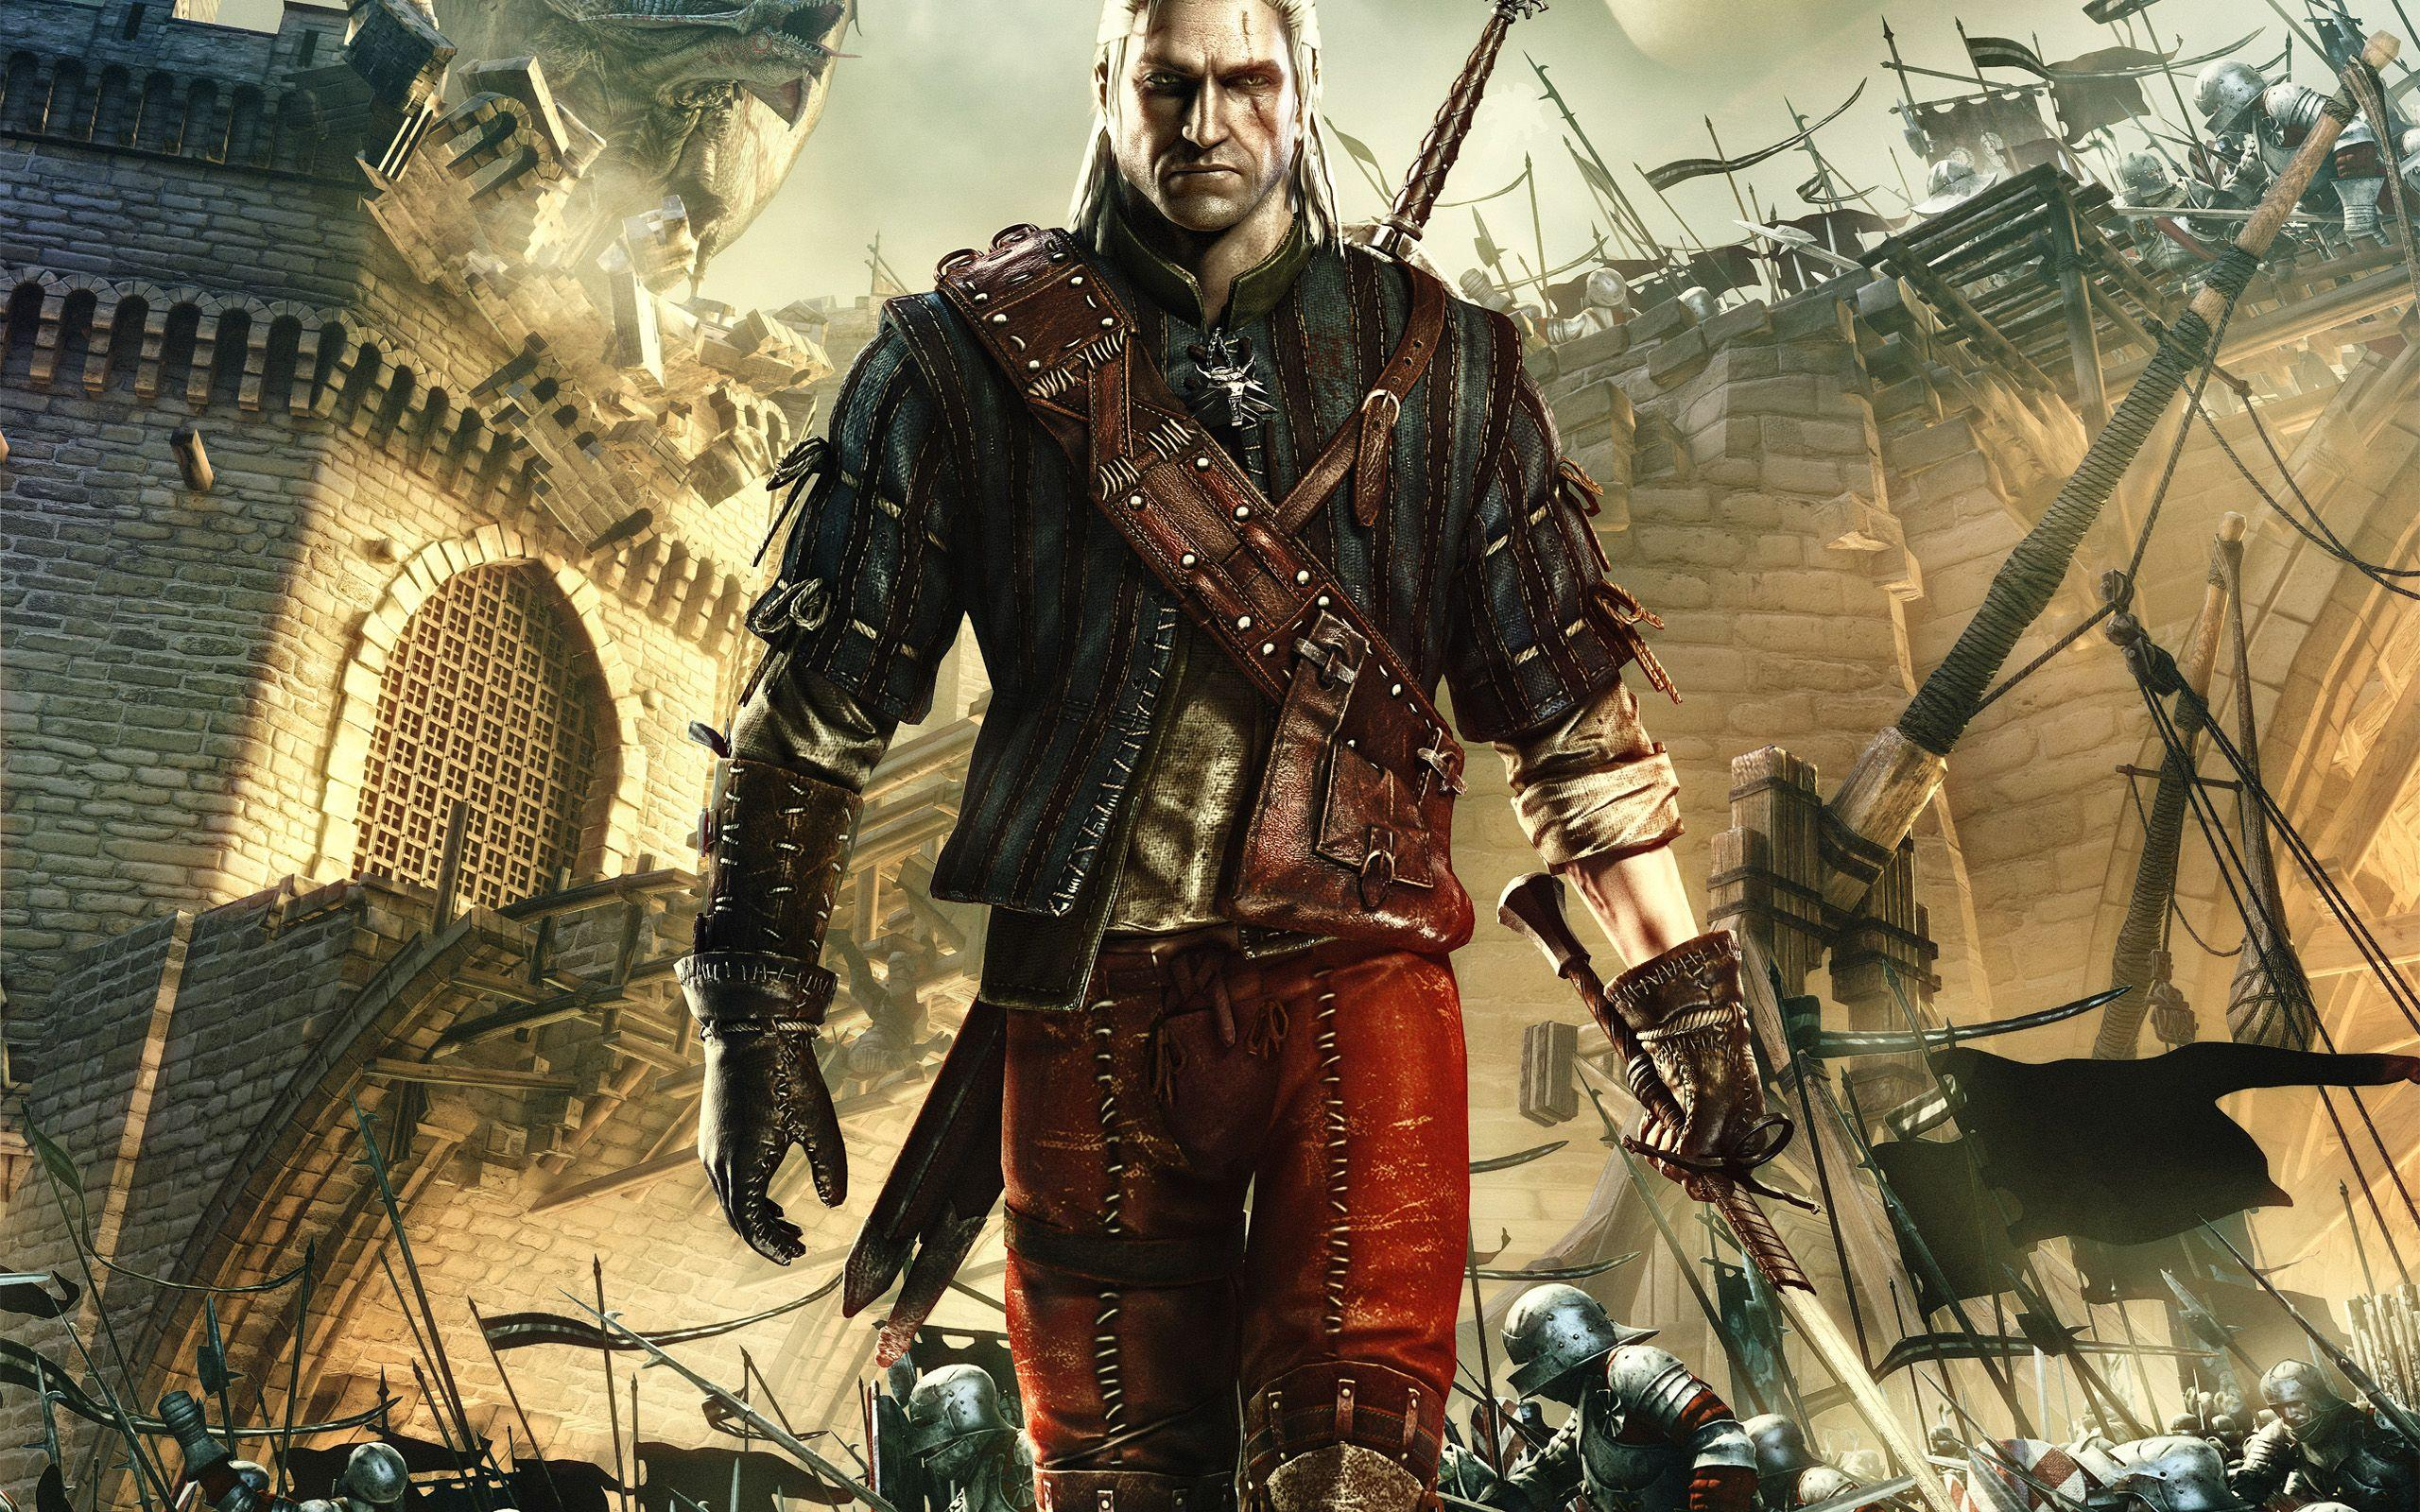 The Witcher 2 Wallpapers - Wallpaper Cave